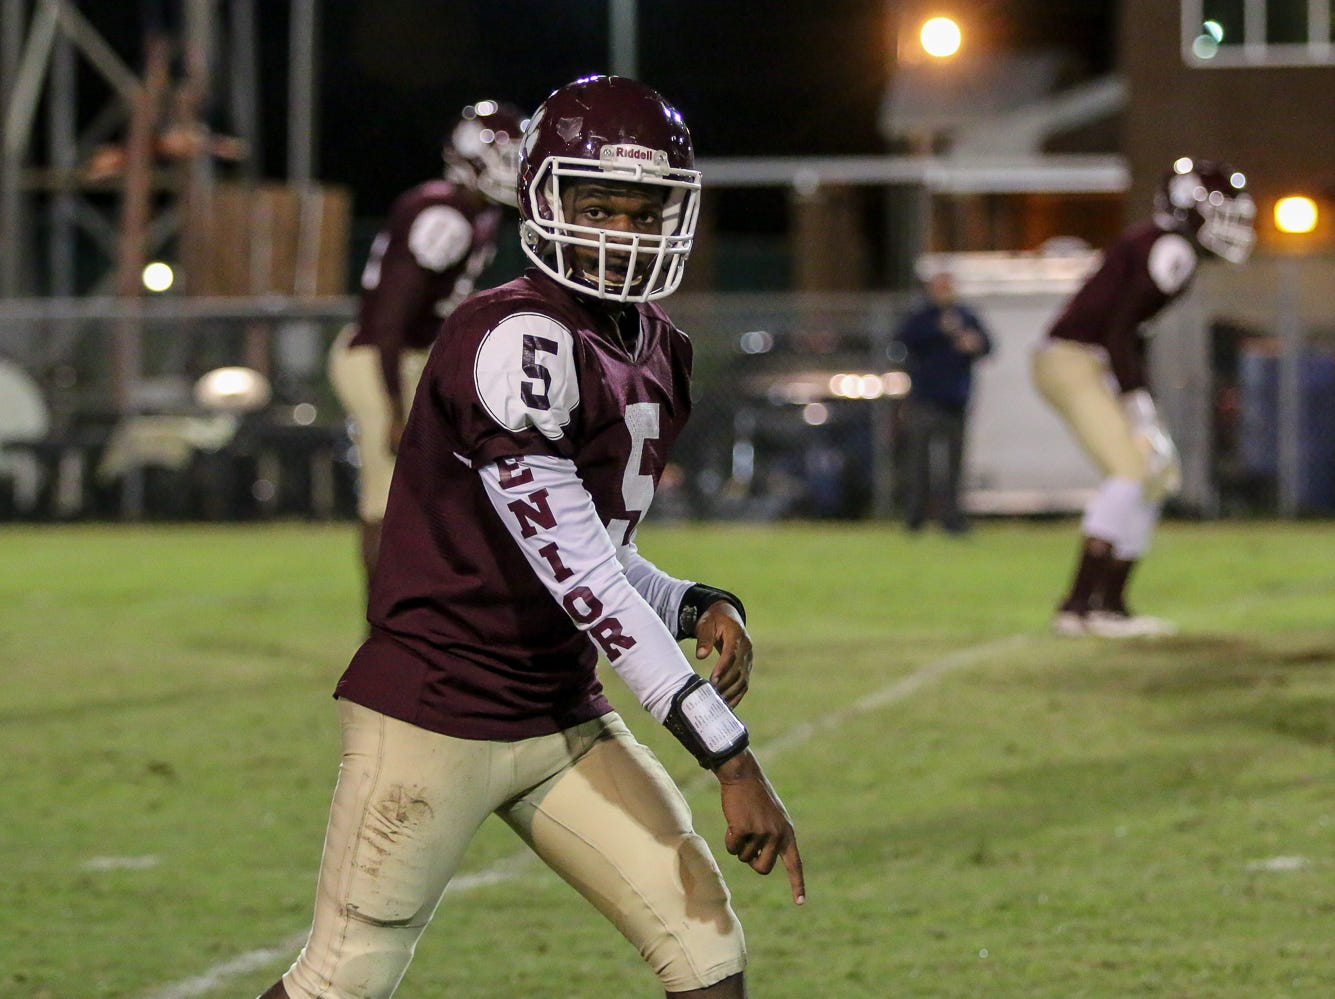 PHS' Ernest Stallworth Jr. (5) checks with an official to make sure he's onside before a play against Escambia in the last game of the regular season on Friday, November 2, 2018, at Pensacola High Schoool.